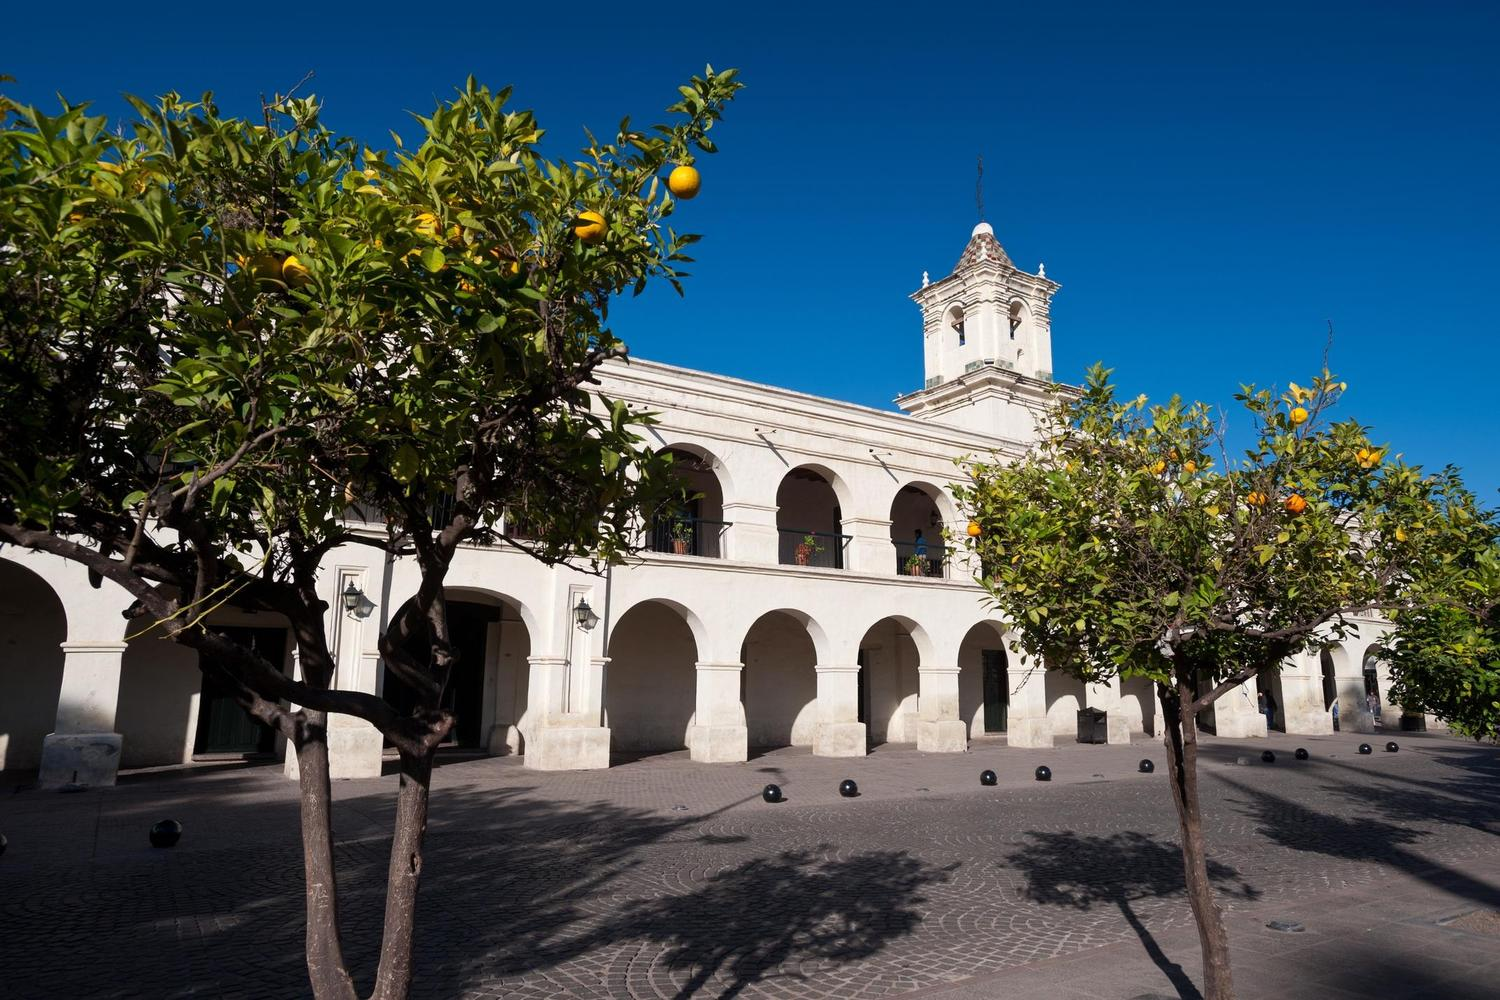 The beautiful central square of Salta